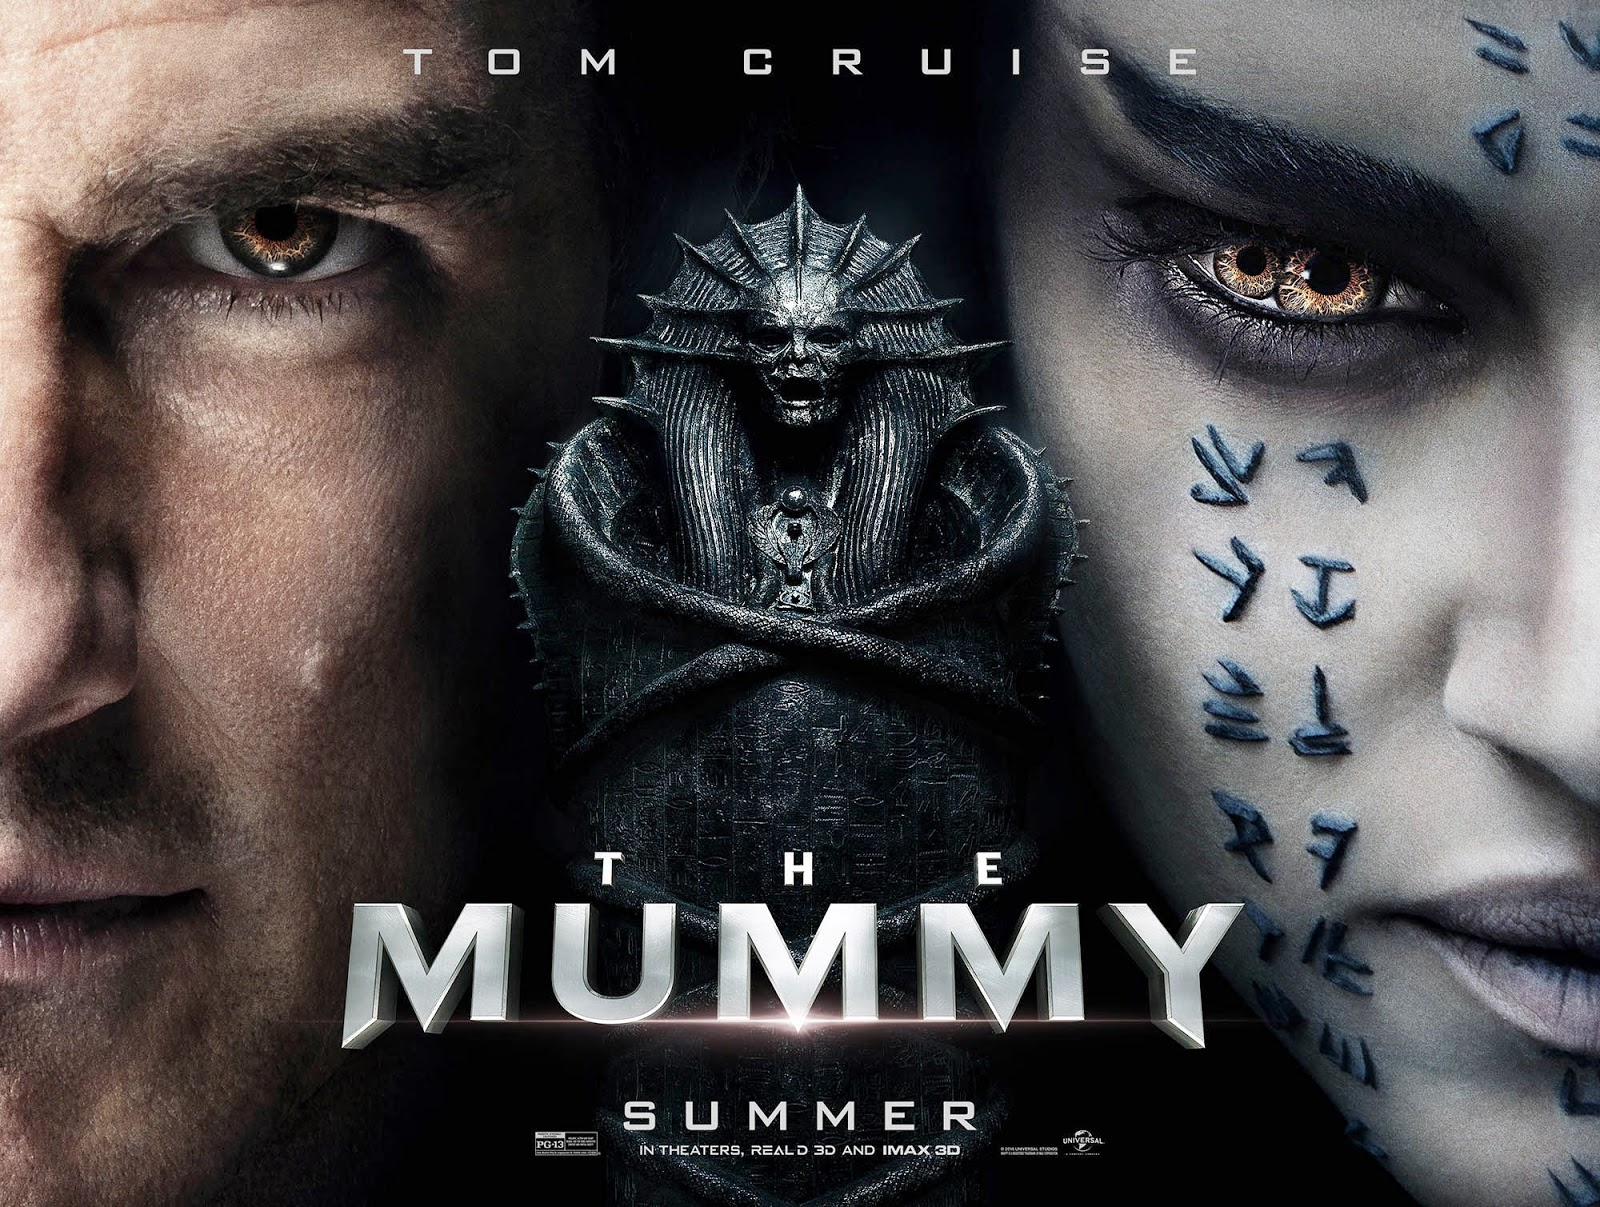 The Mummy: Tom Cruise told Annabelle Wallis that no one runs on screen with him